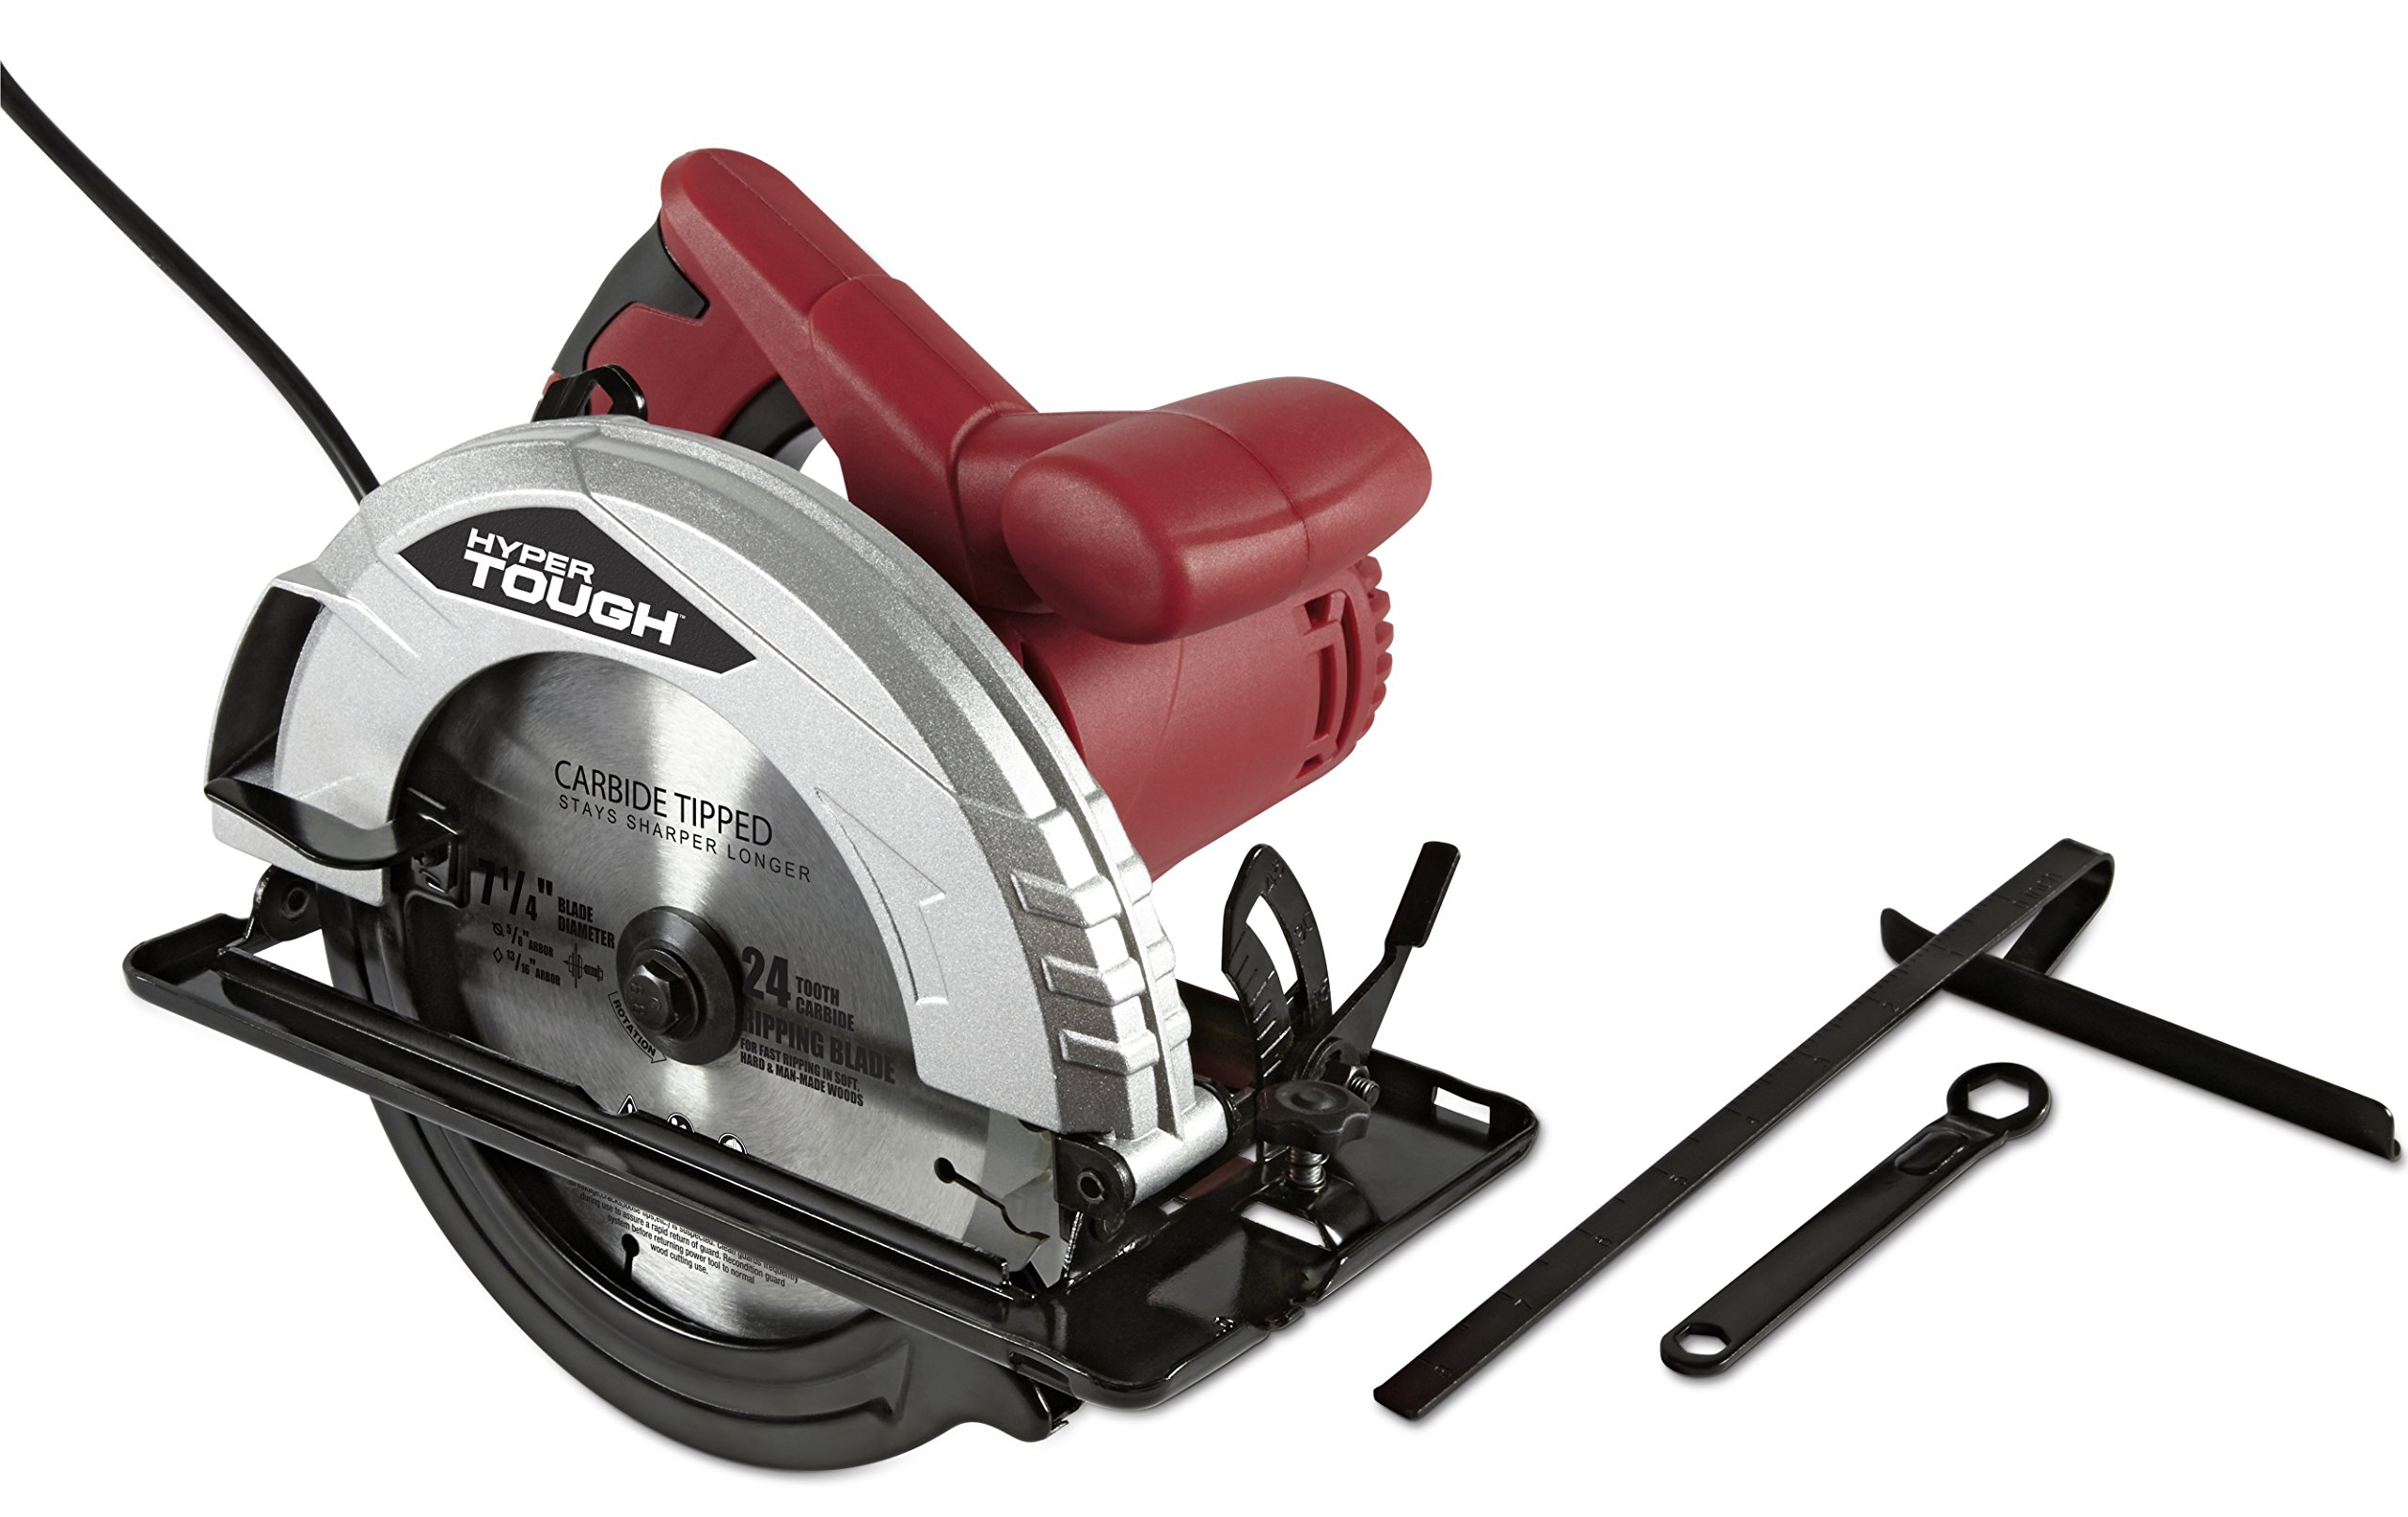 Hyper Tough AQ10019G 12 AMP 7-1/4 Inch Circular Saw With Steel Shoe